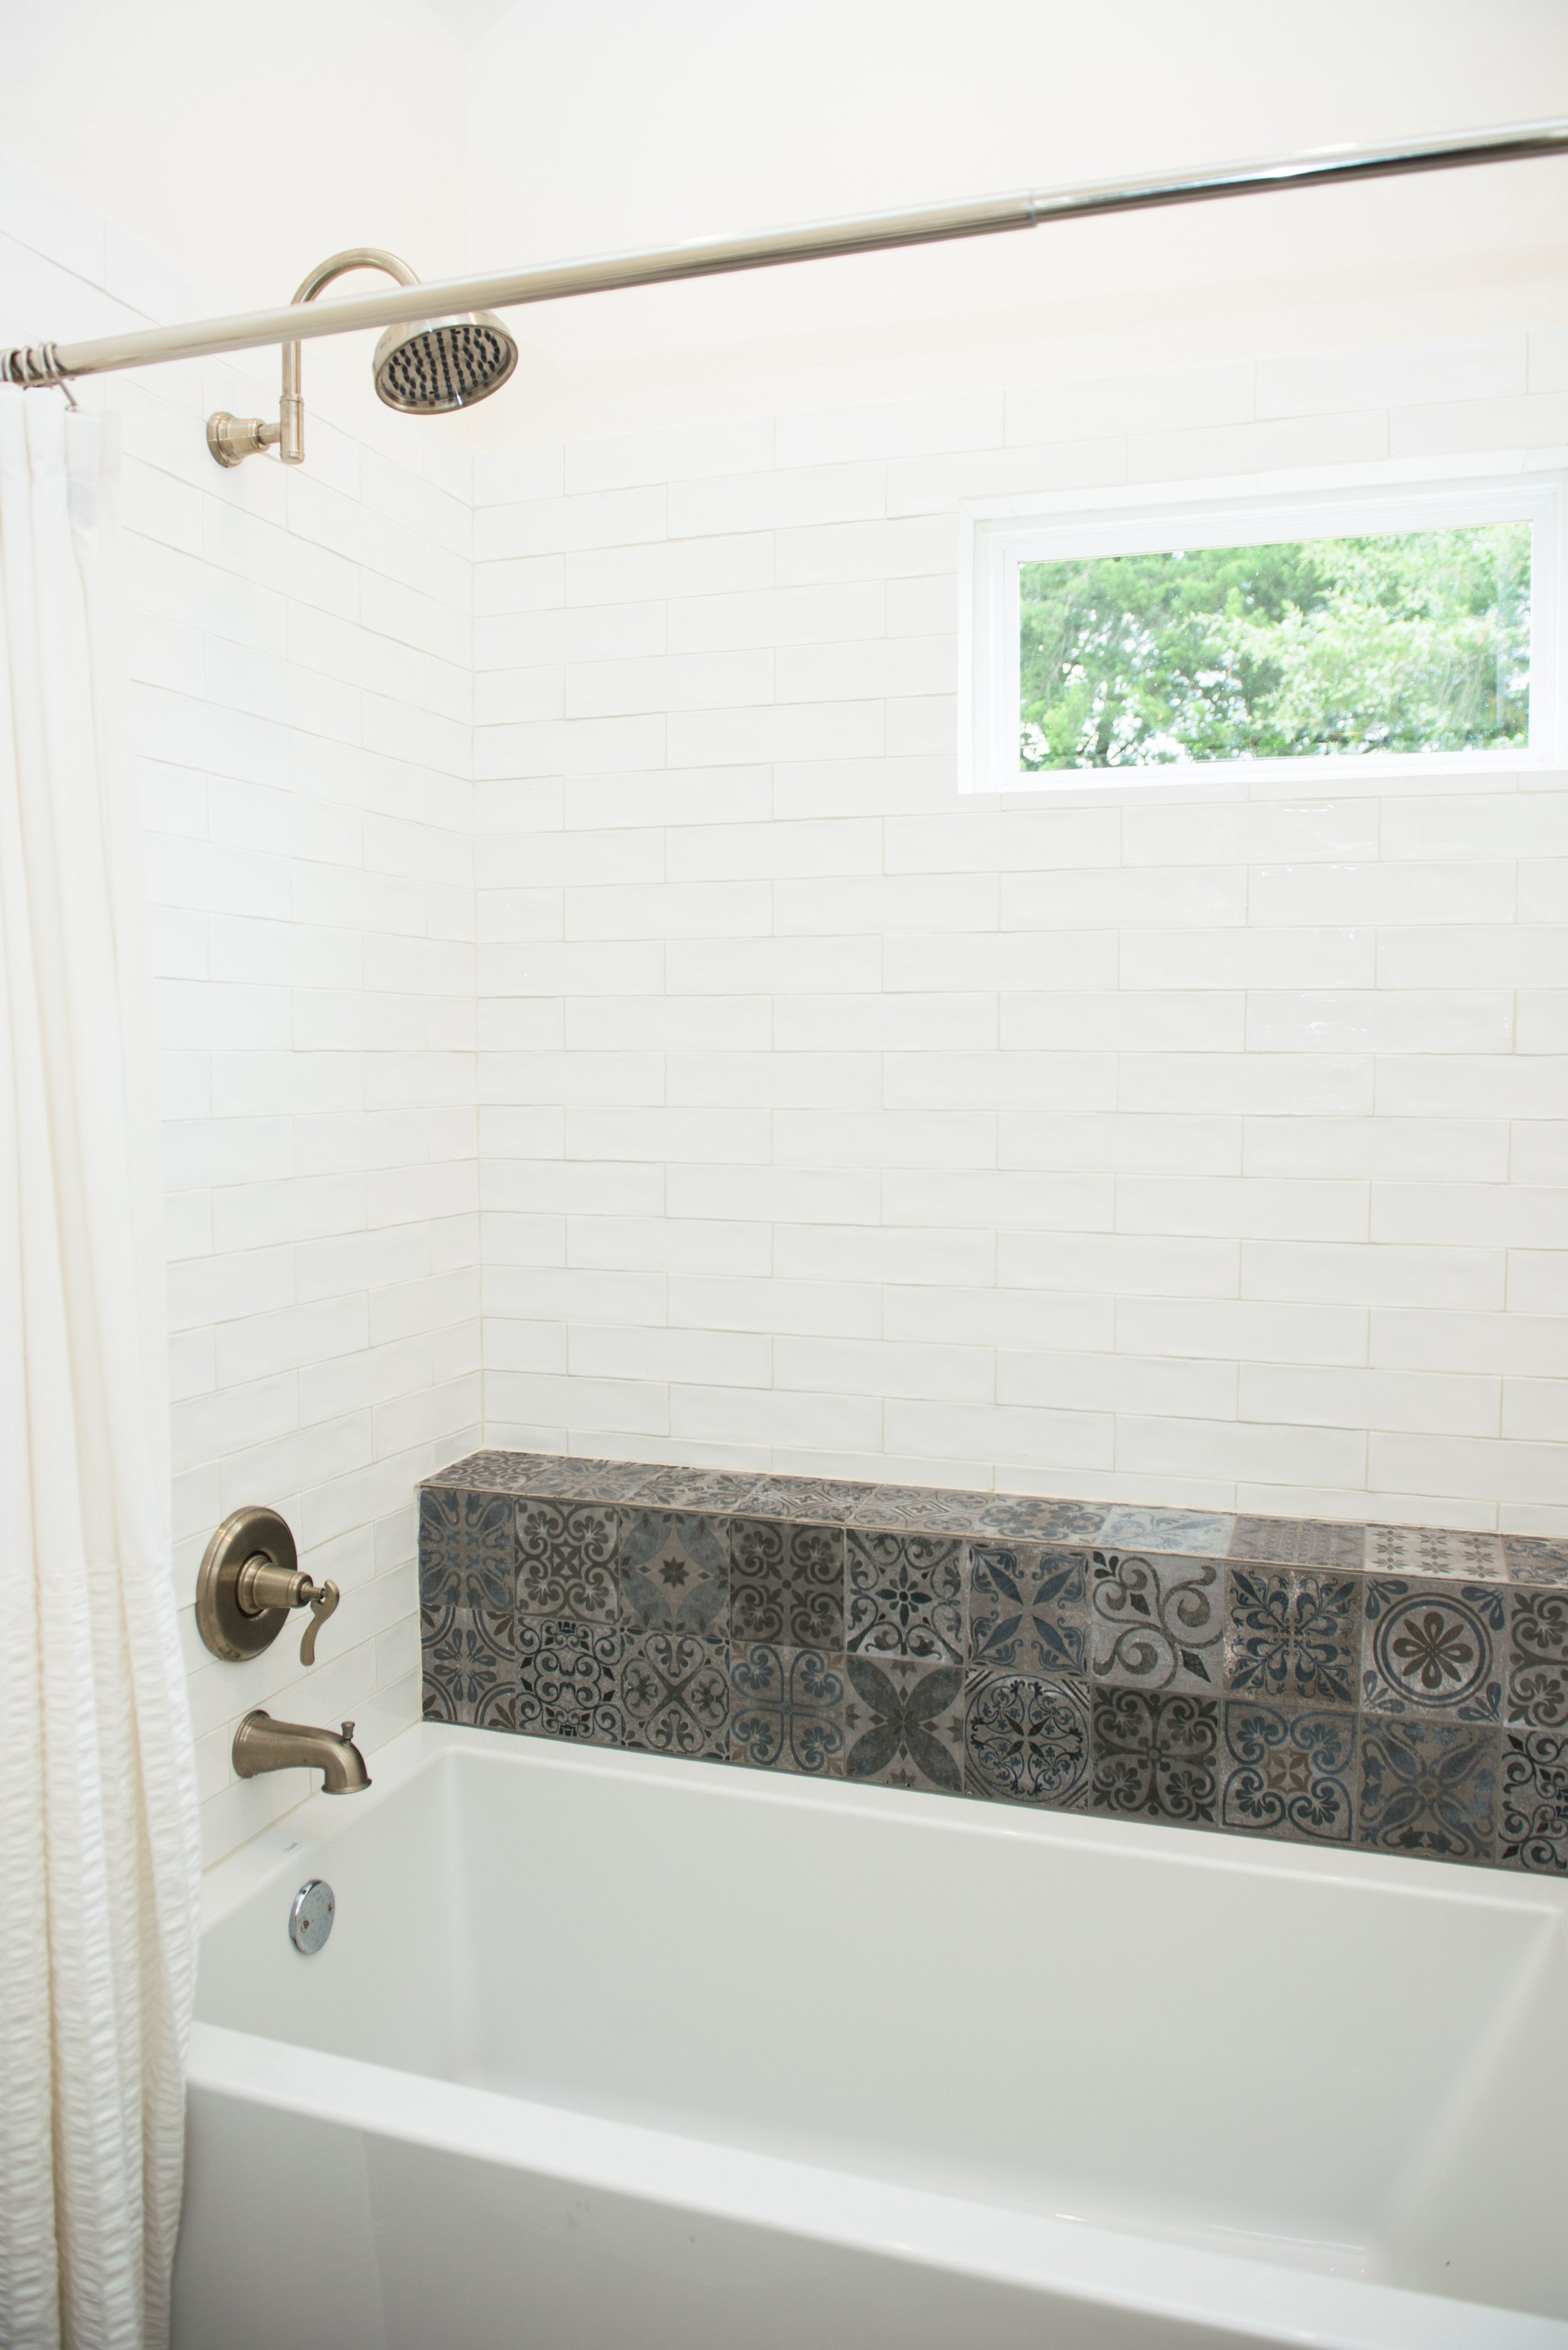 The Boho guest bedroom bath features a soaking tub and shower.